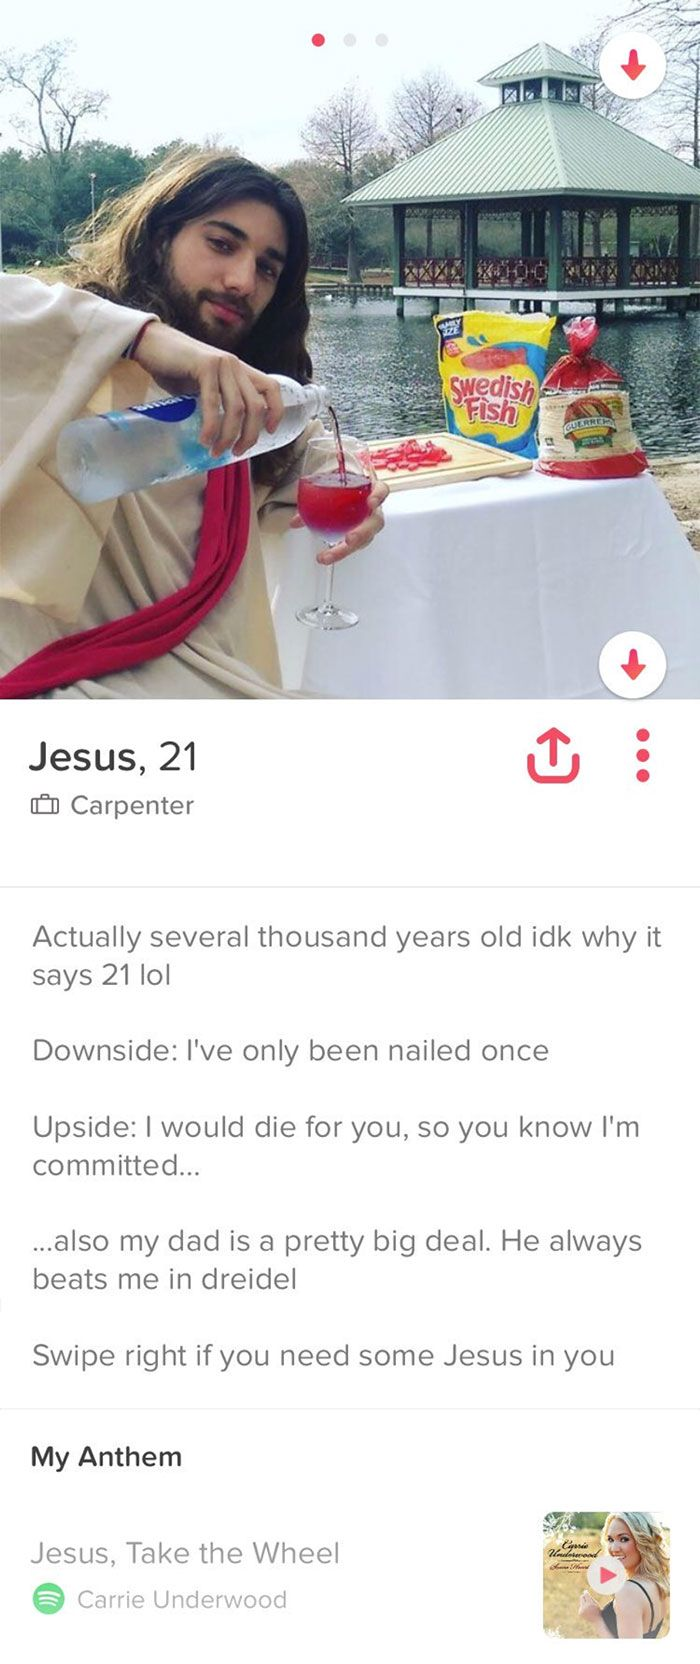 158 Funny Tinder Profiles That Will Make You Look Twice